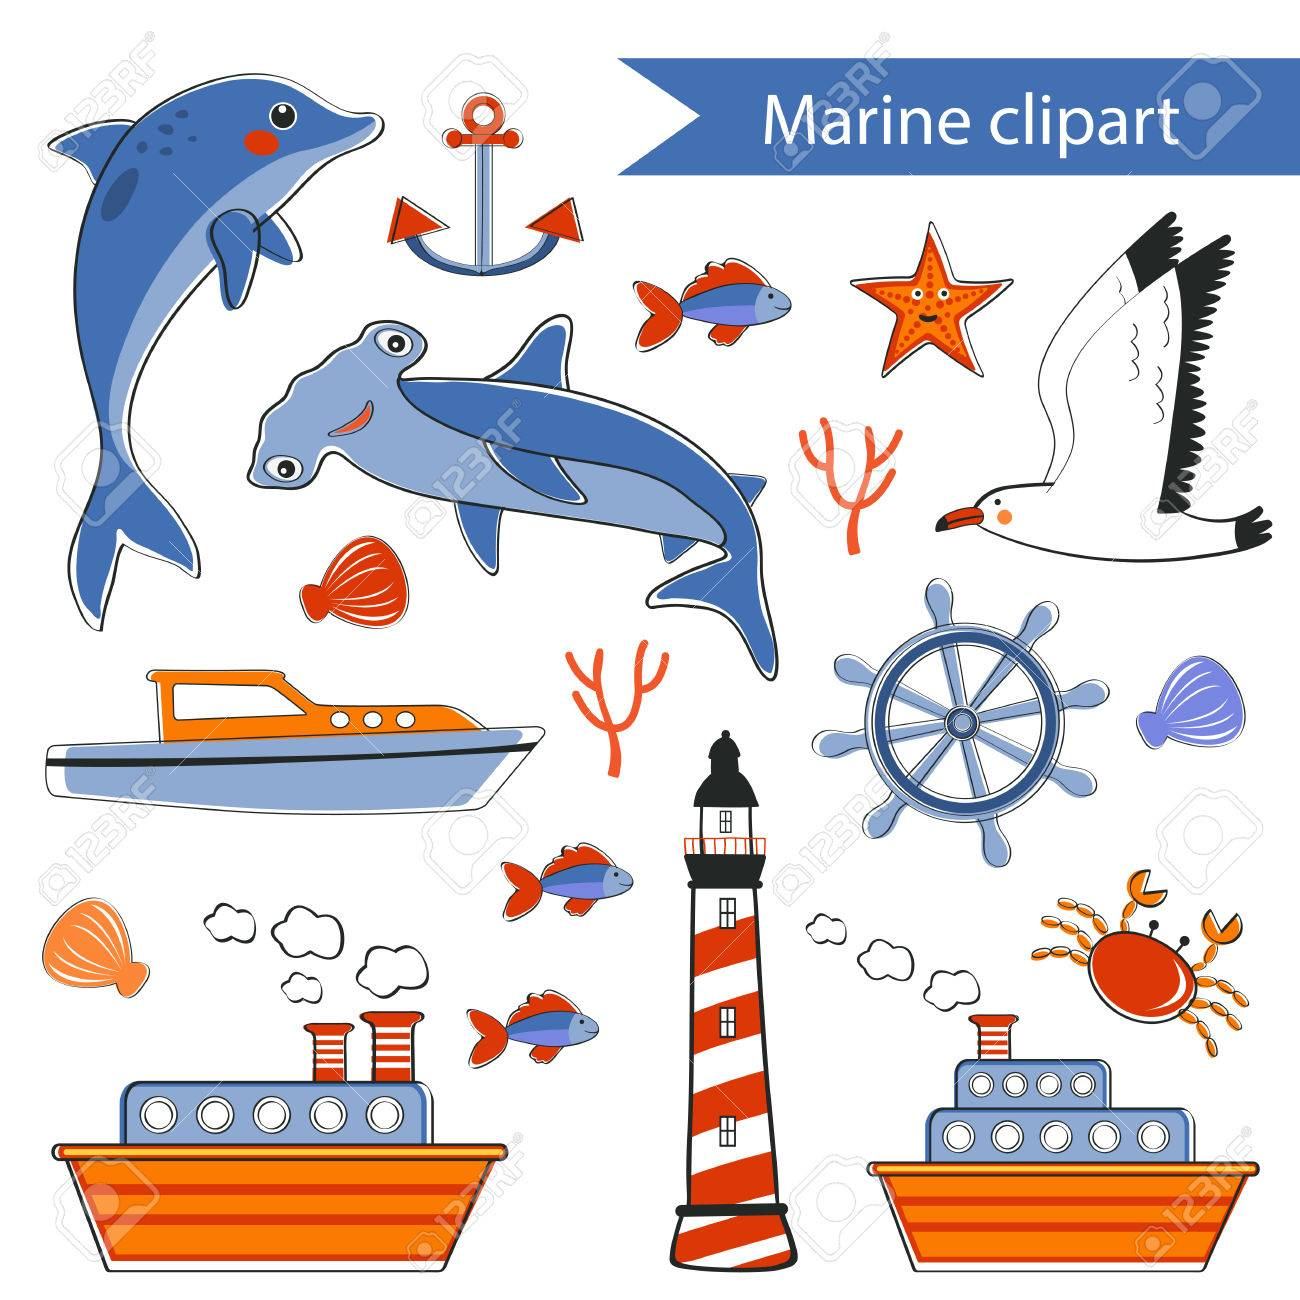 marine clipart stock photo picture and royalty free image image rh 123rf com clipart marine corps emblem marine clipart black and white